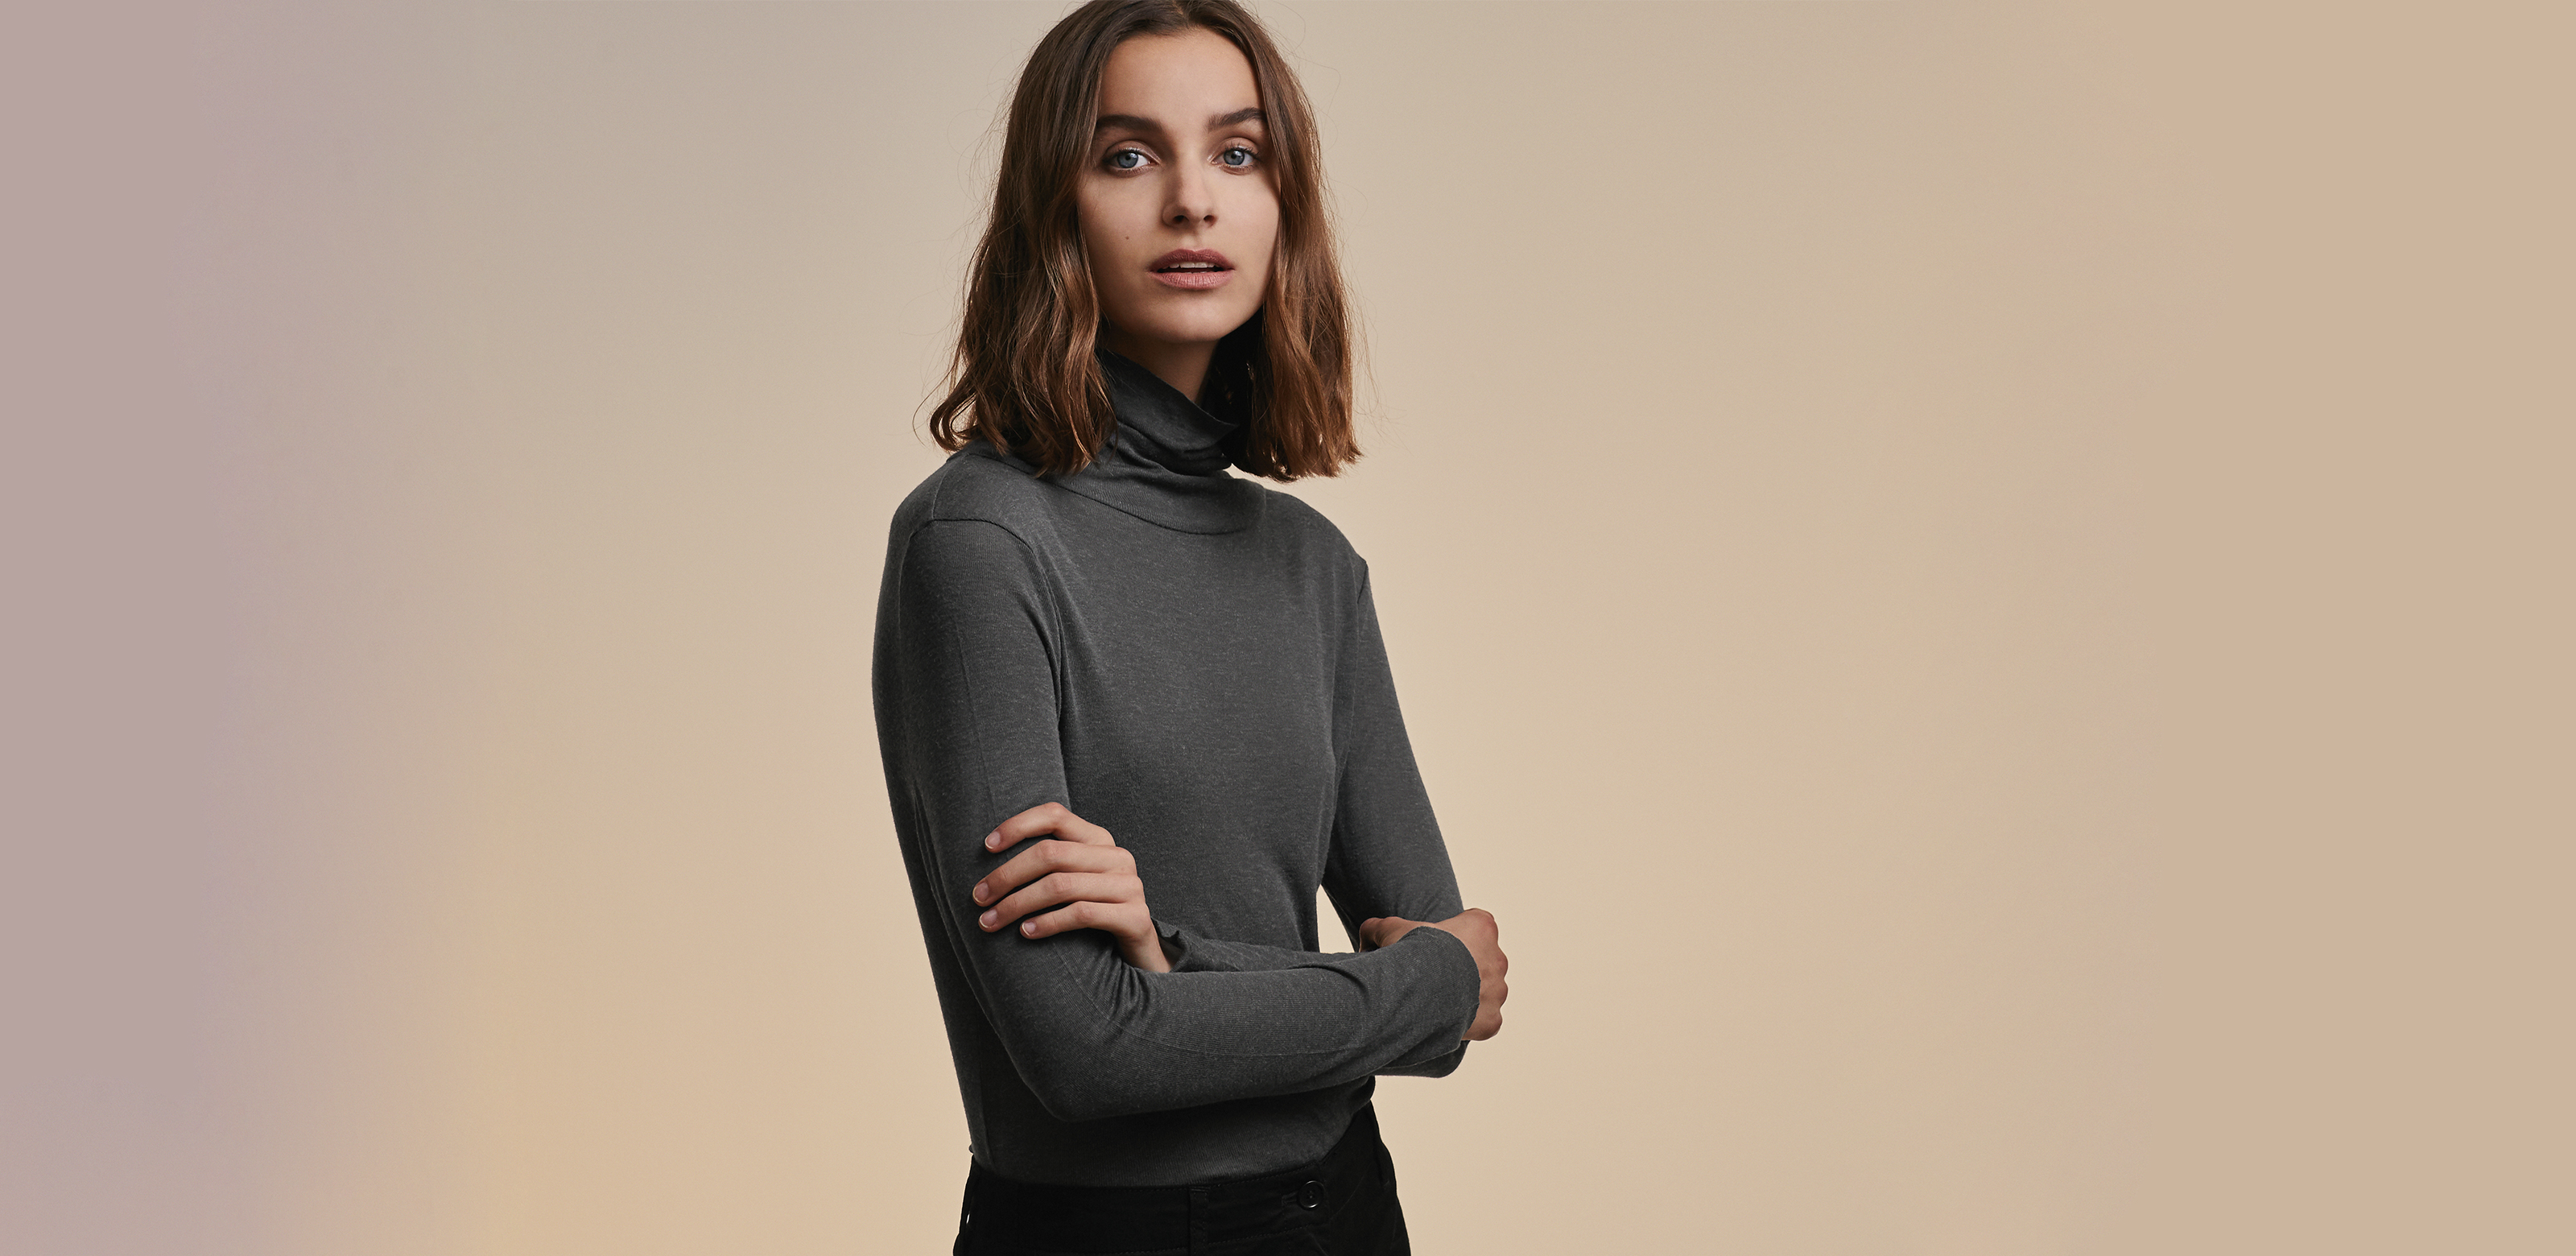 MEET YOUR NEW FAVORITE FALL SWEATERS